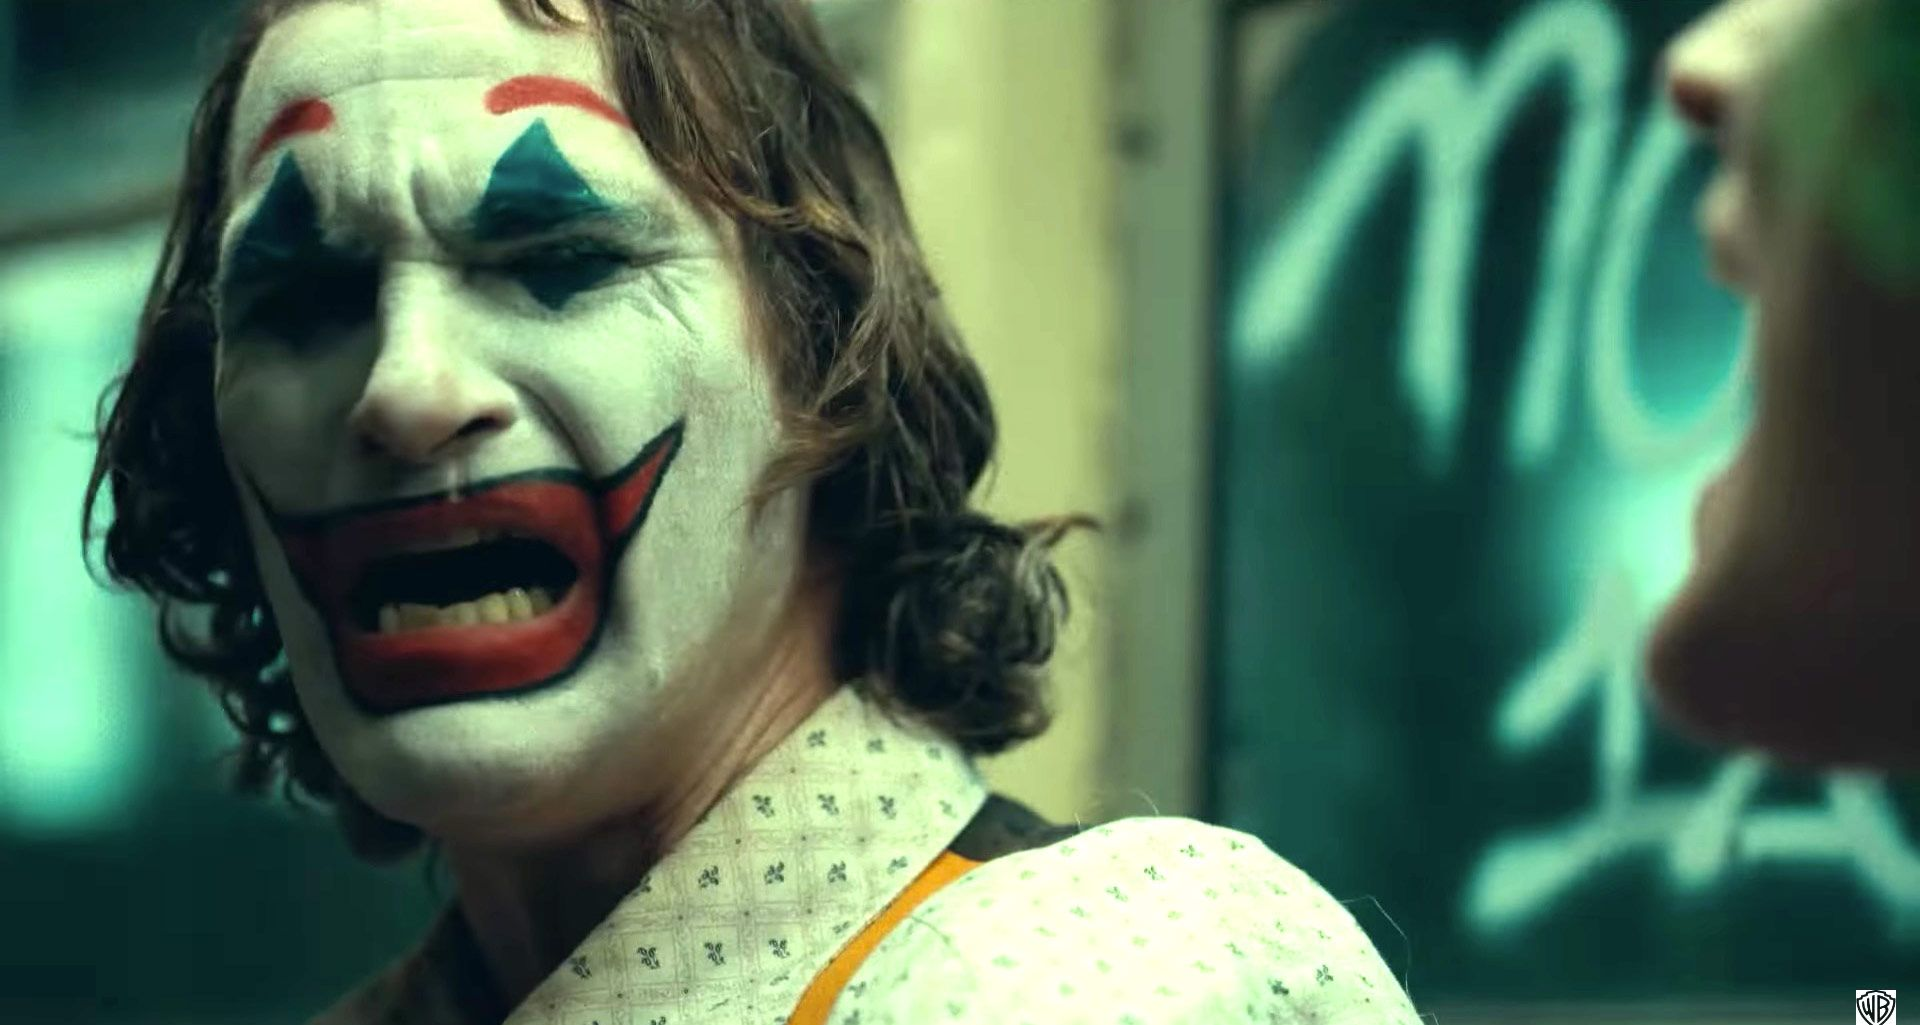 """Joker director says a possible sequel won't be a """"wild movie about the Clown Prince of Crime"""""""